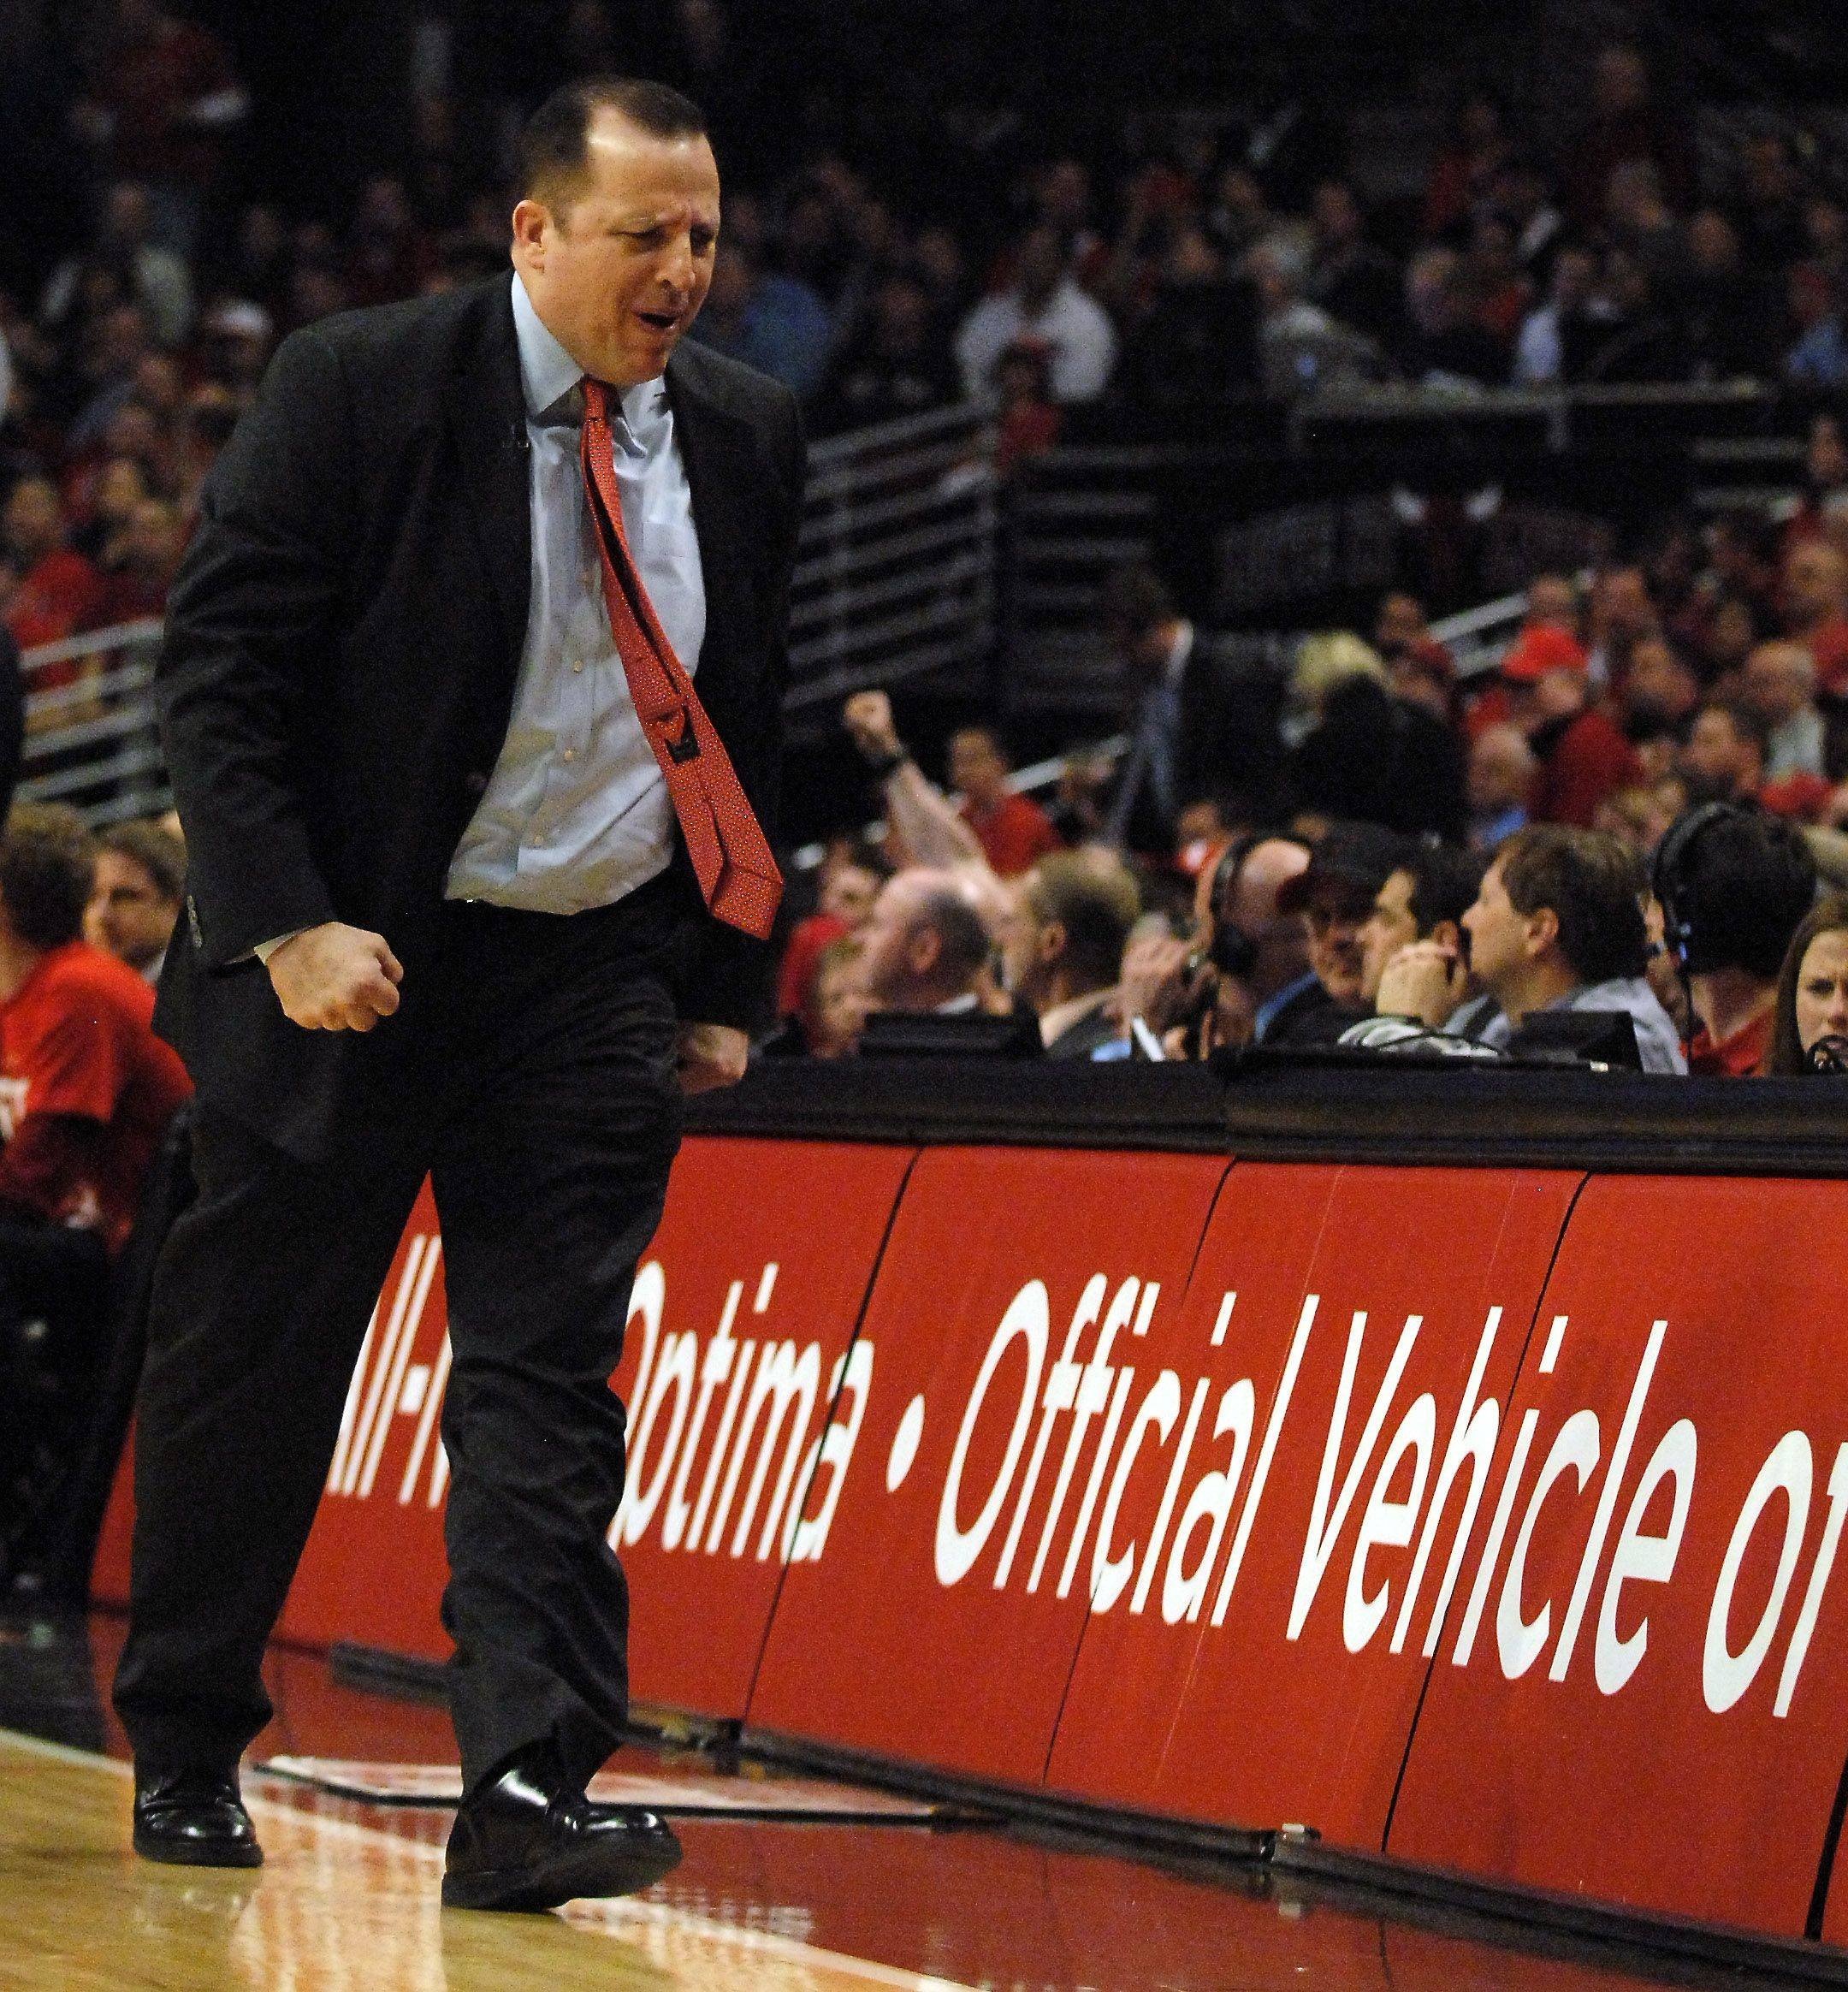 Head coach Tom Thibodeau stomps toward the bench after a foul is called against the Bulls in Chicago Tuesday.